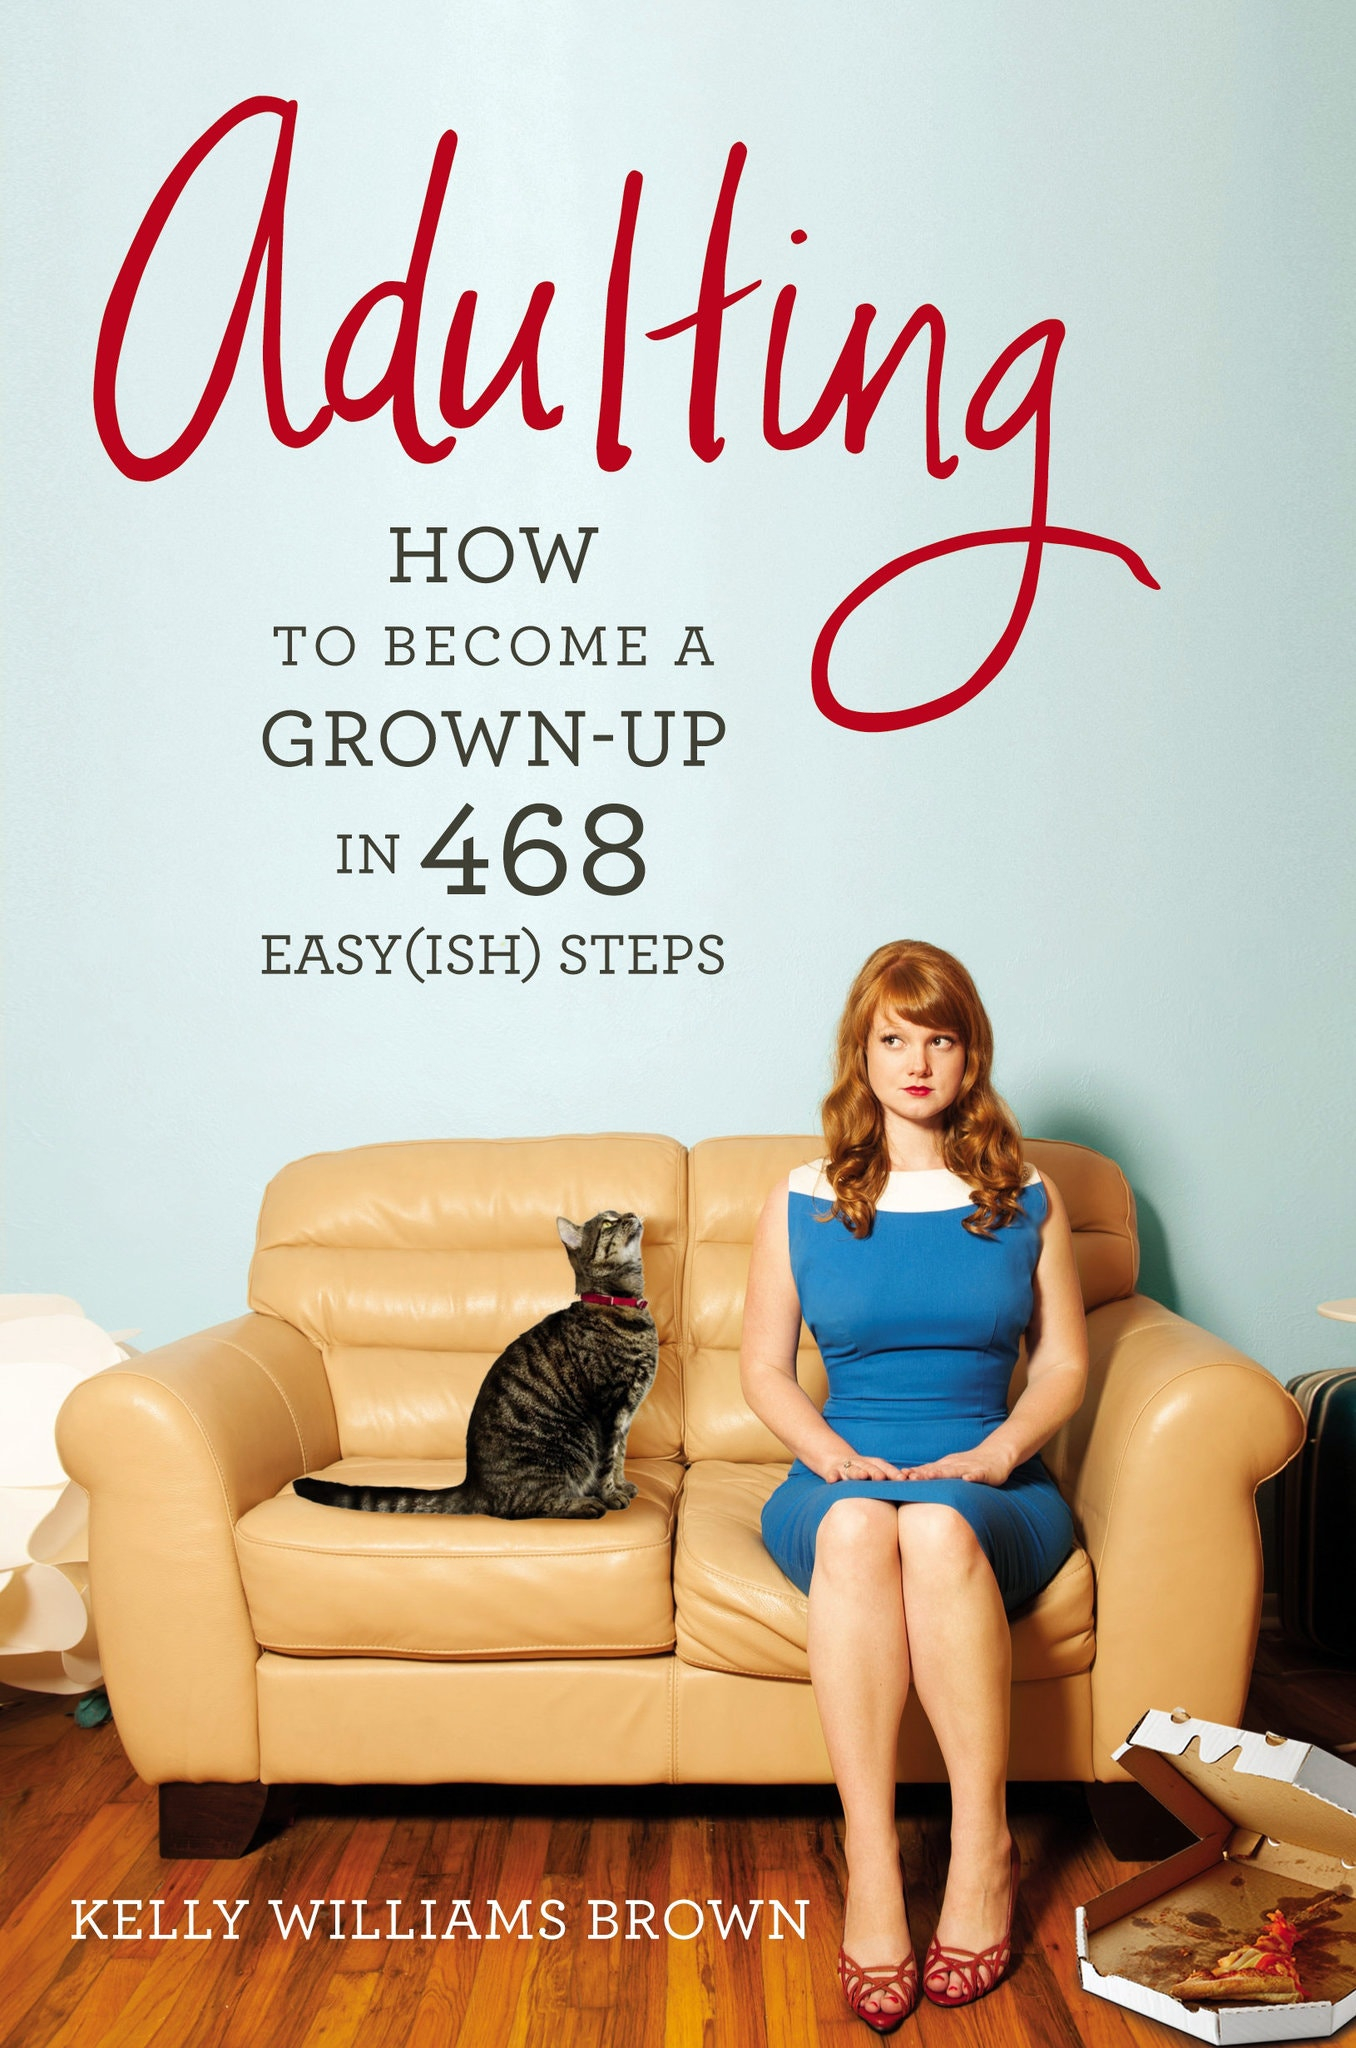 'Adulting: How to Become a Grown-up' by Kelly Williams Brown